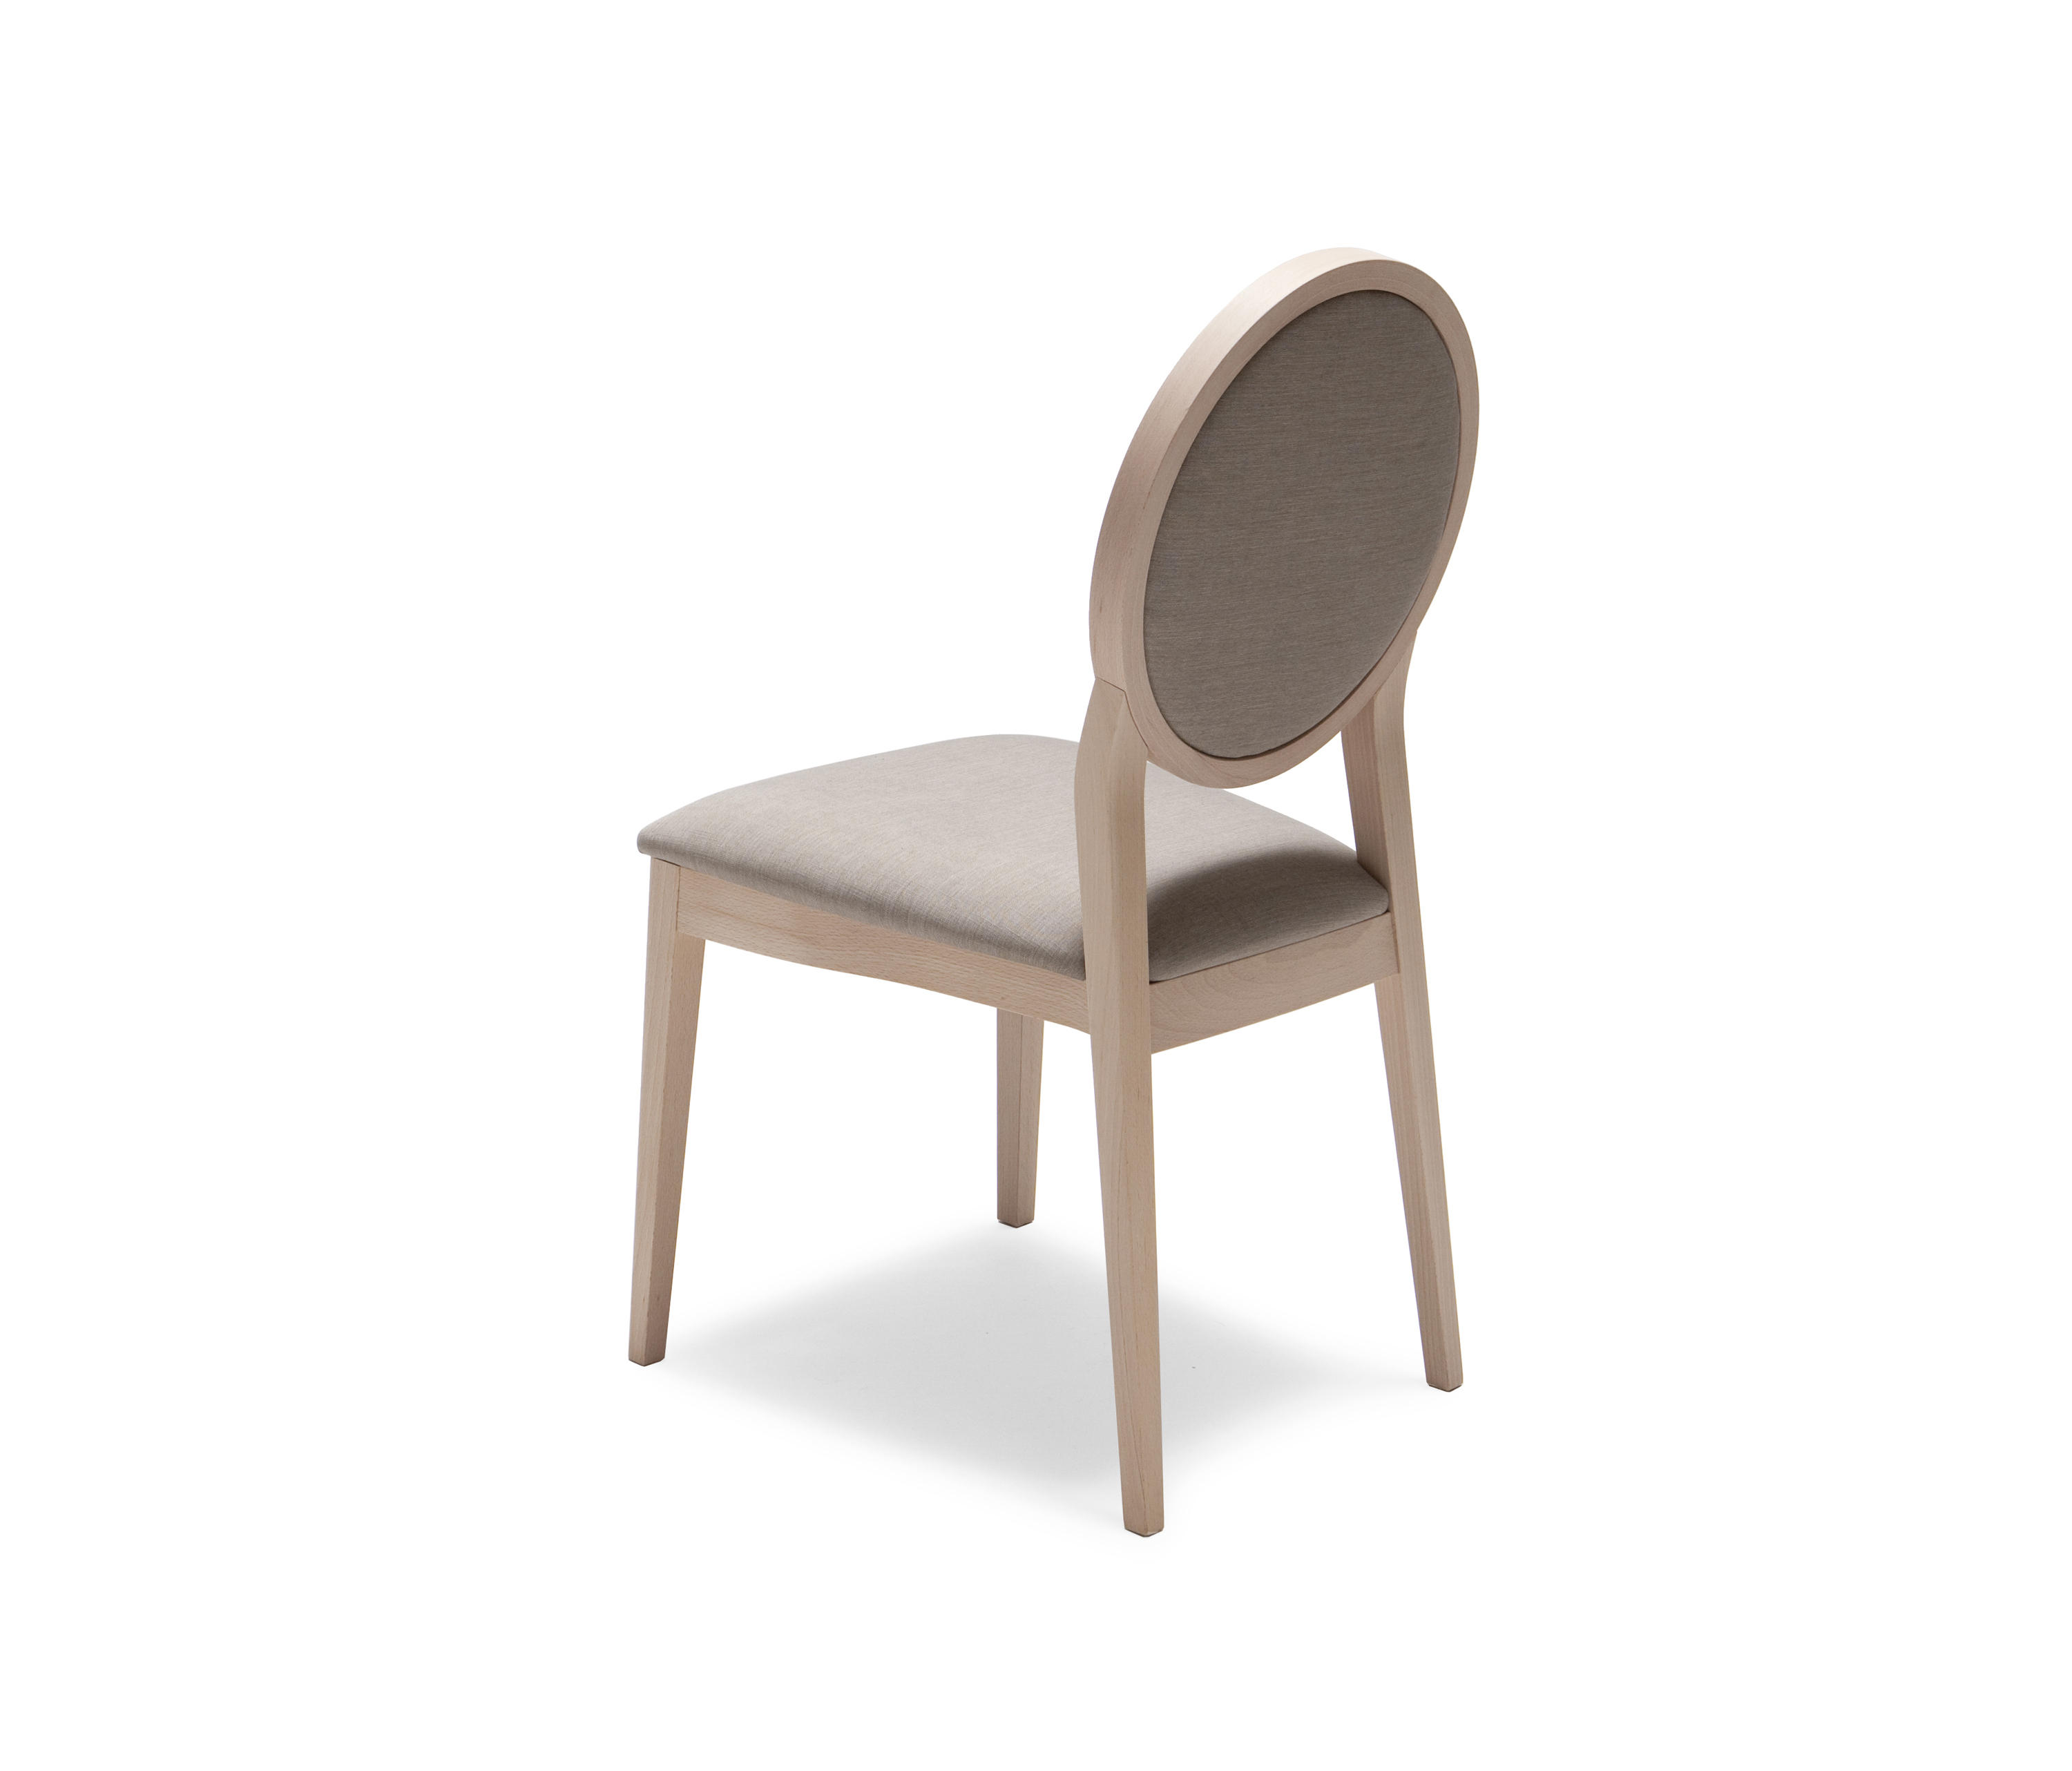 ... Medaillon 188 By ORIGINS 1971 | Chairs ...